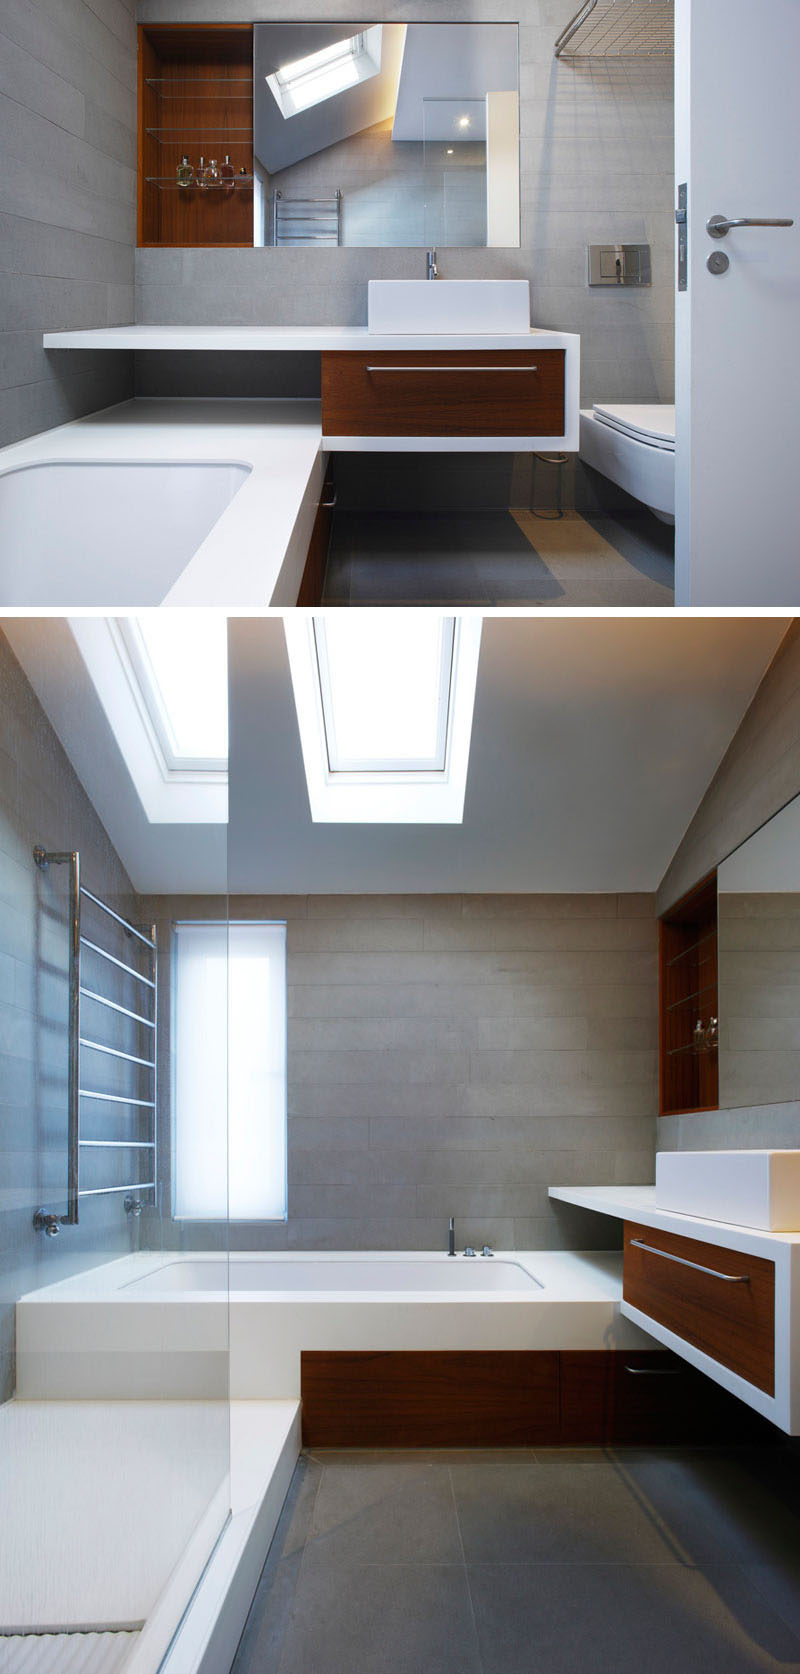 In this modern bathroom, Pietra Serena Italian sandstone walls and floors have been combined with real teak cabinets and shelving to create a modern and clean appearance and to add a touch of warmth and luxury to the home.